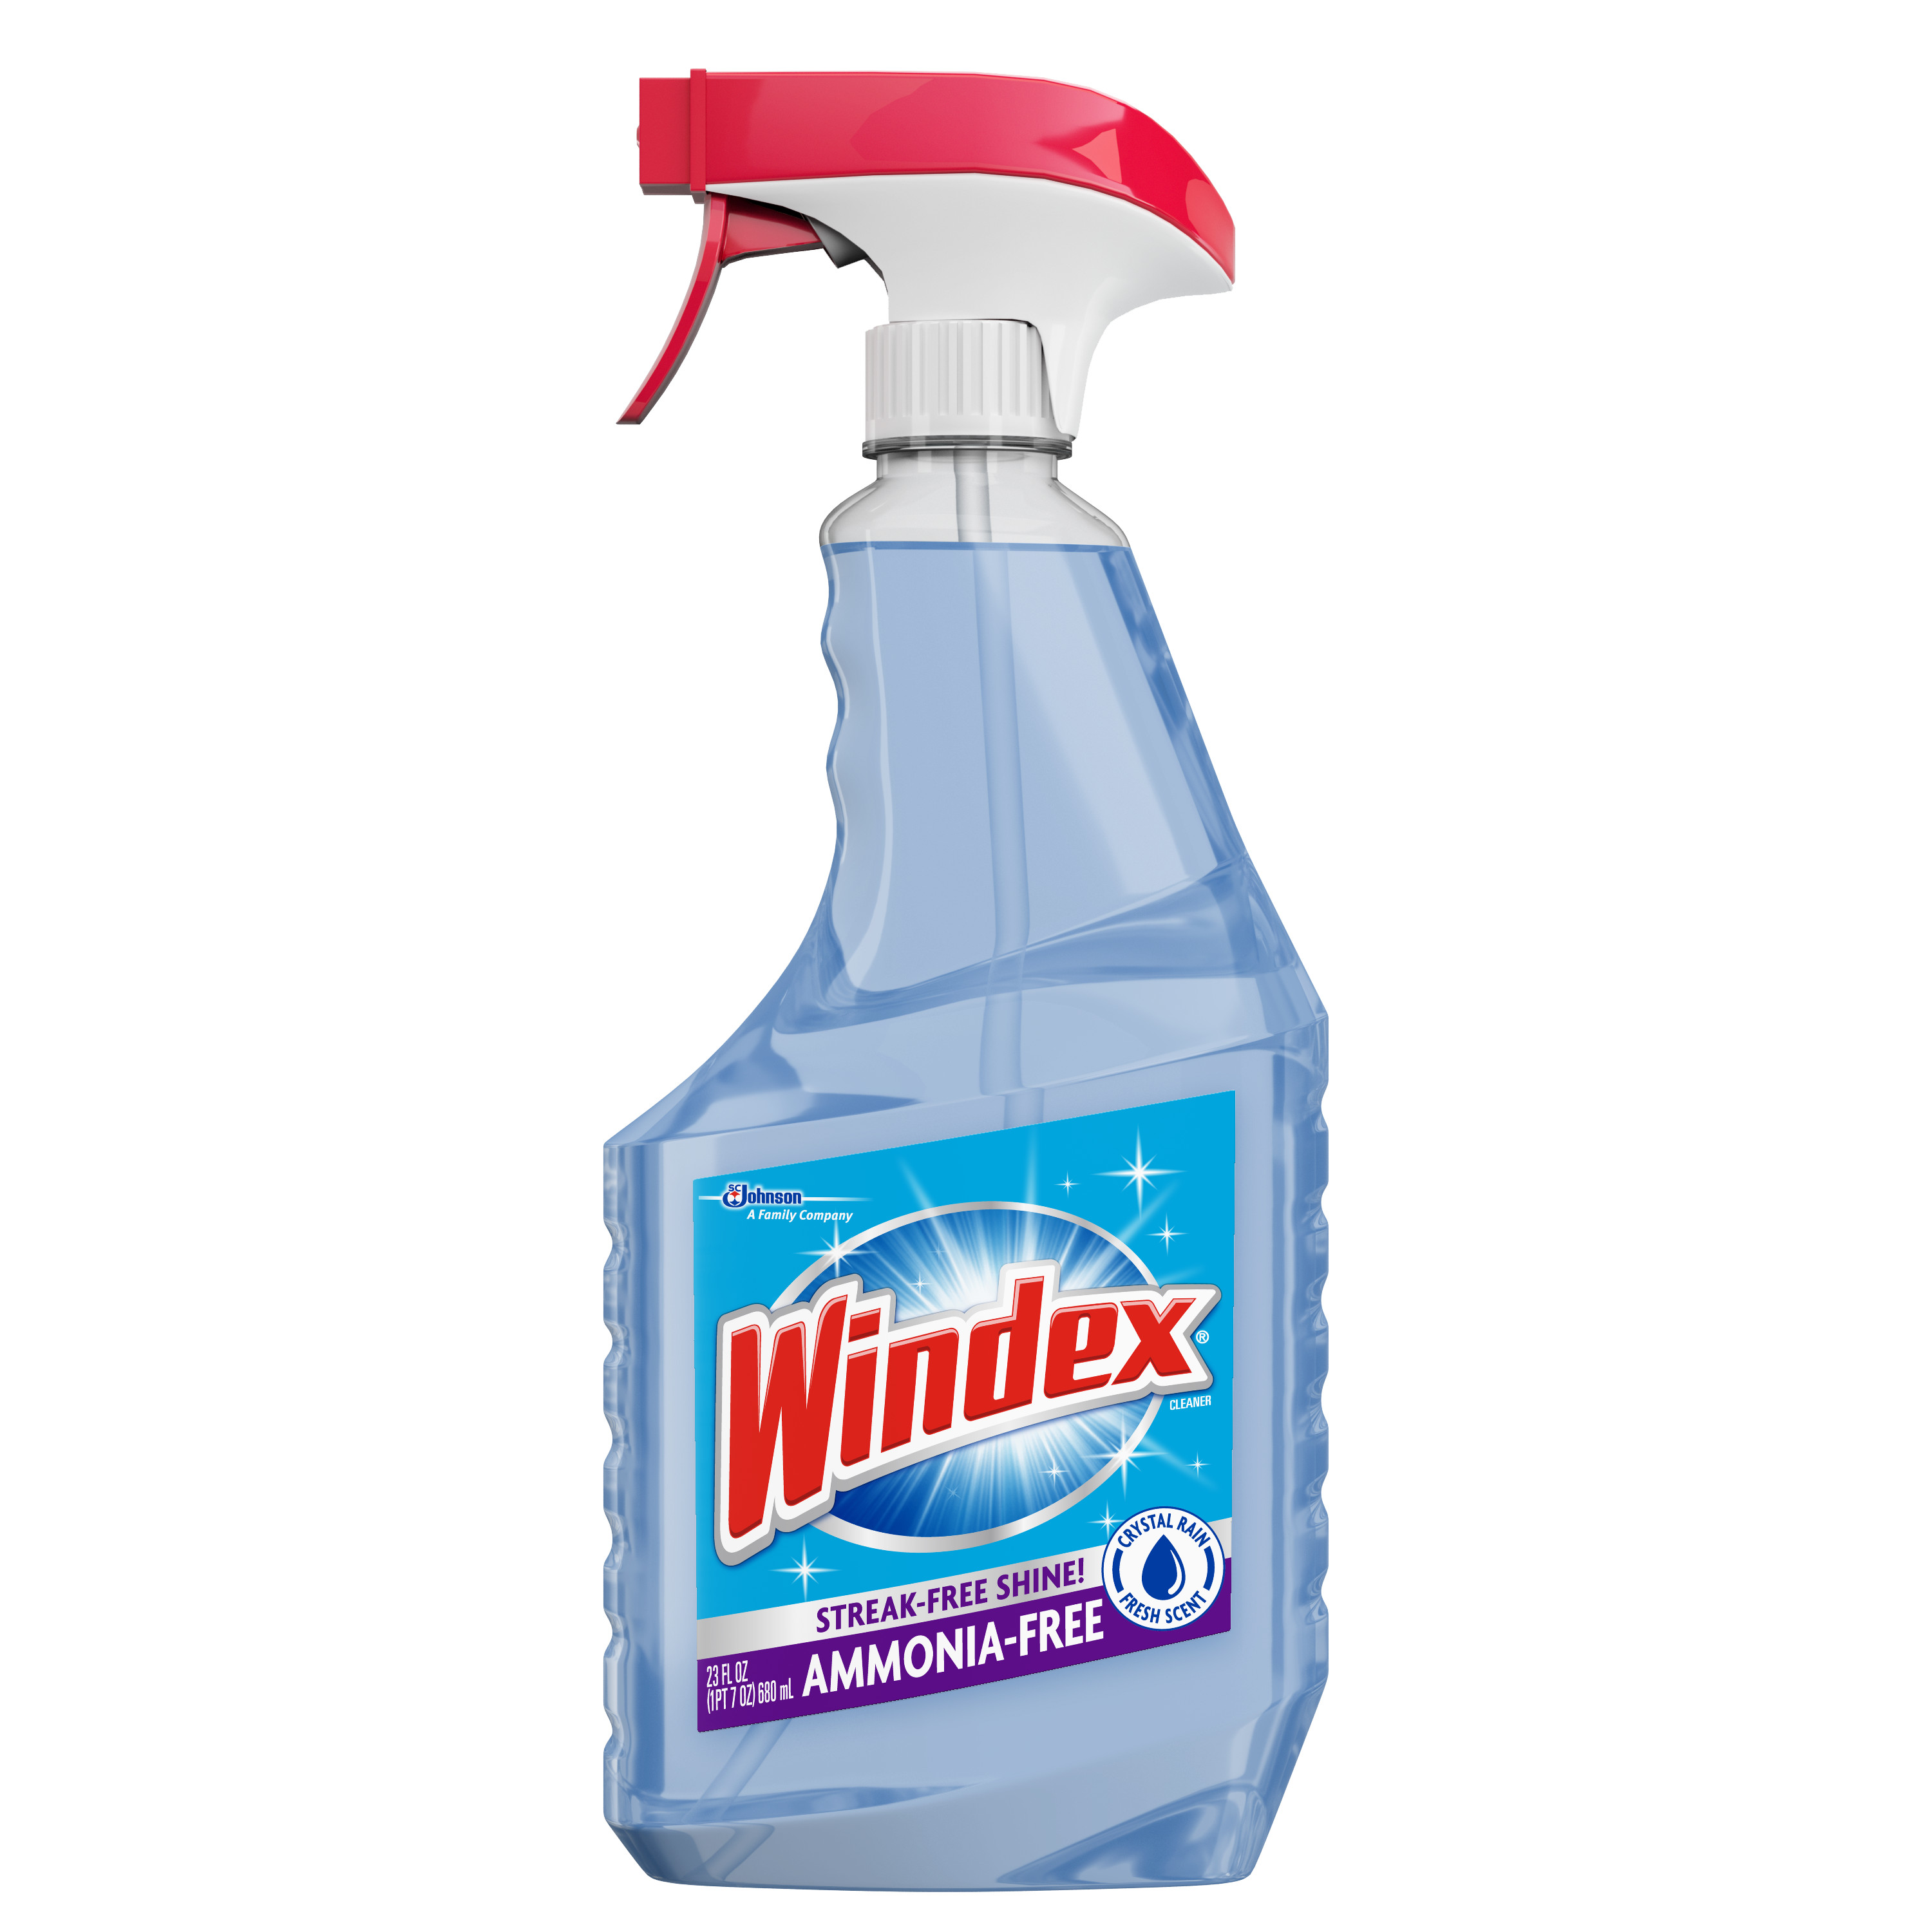 Windex Crystal Rain Glass Cleaner Trigger 23 Fluid Ounces